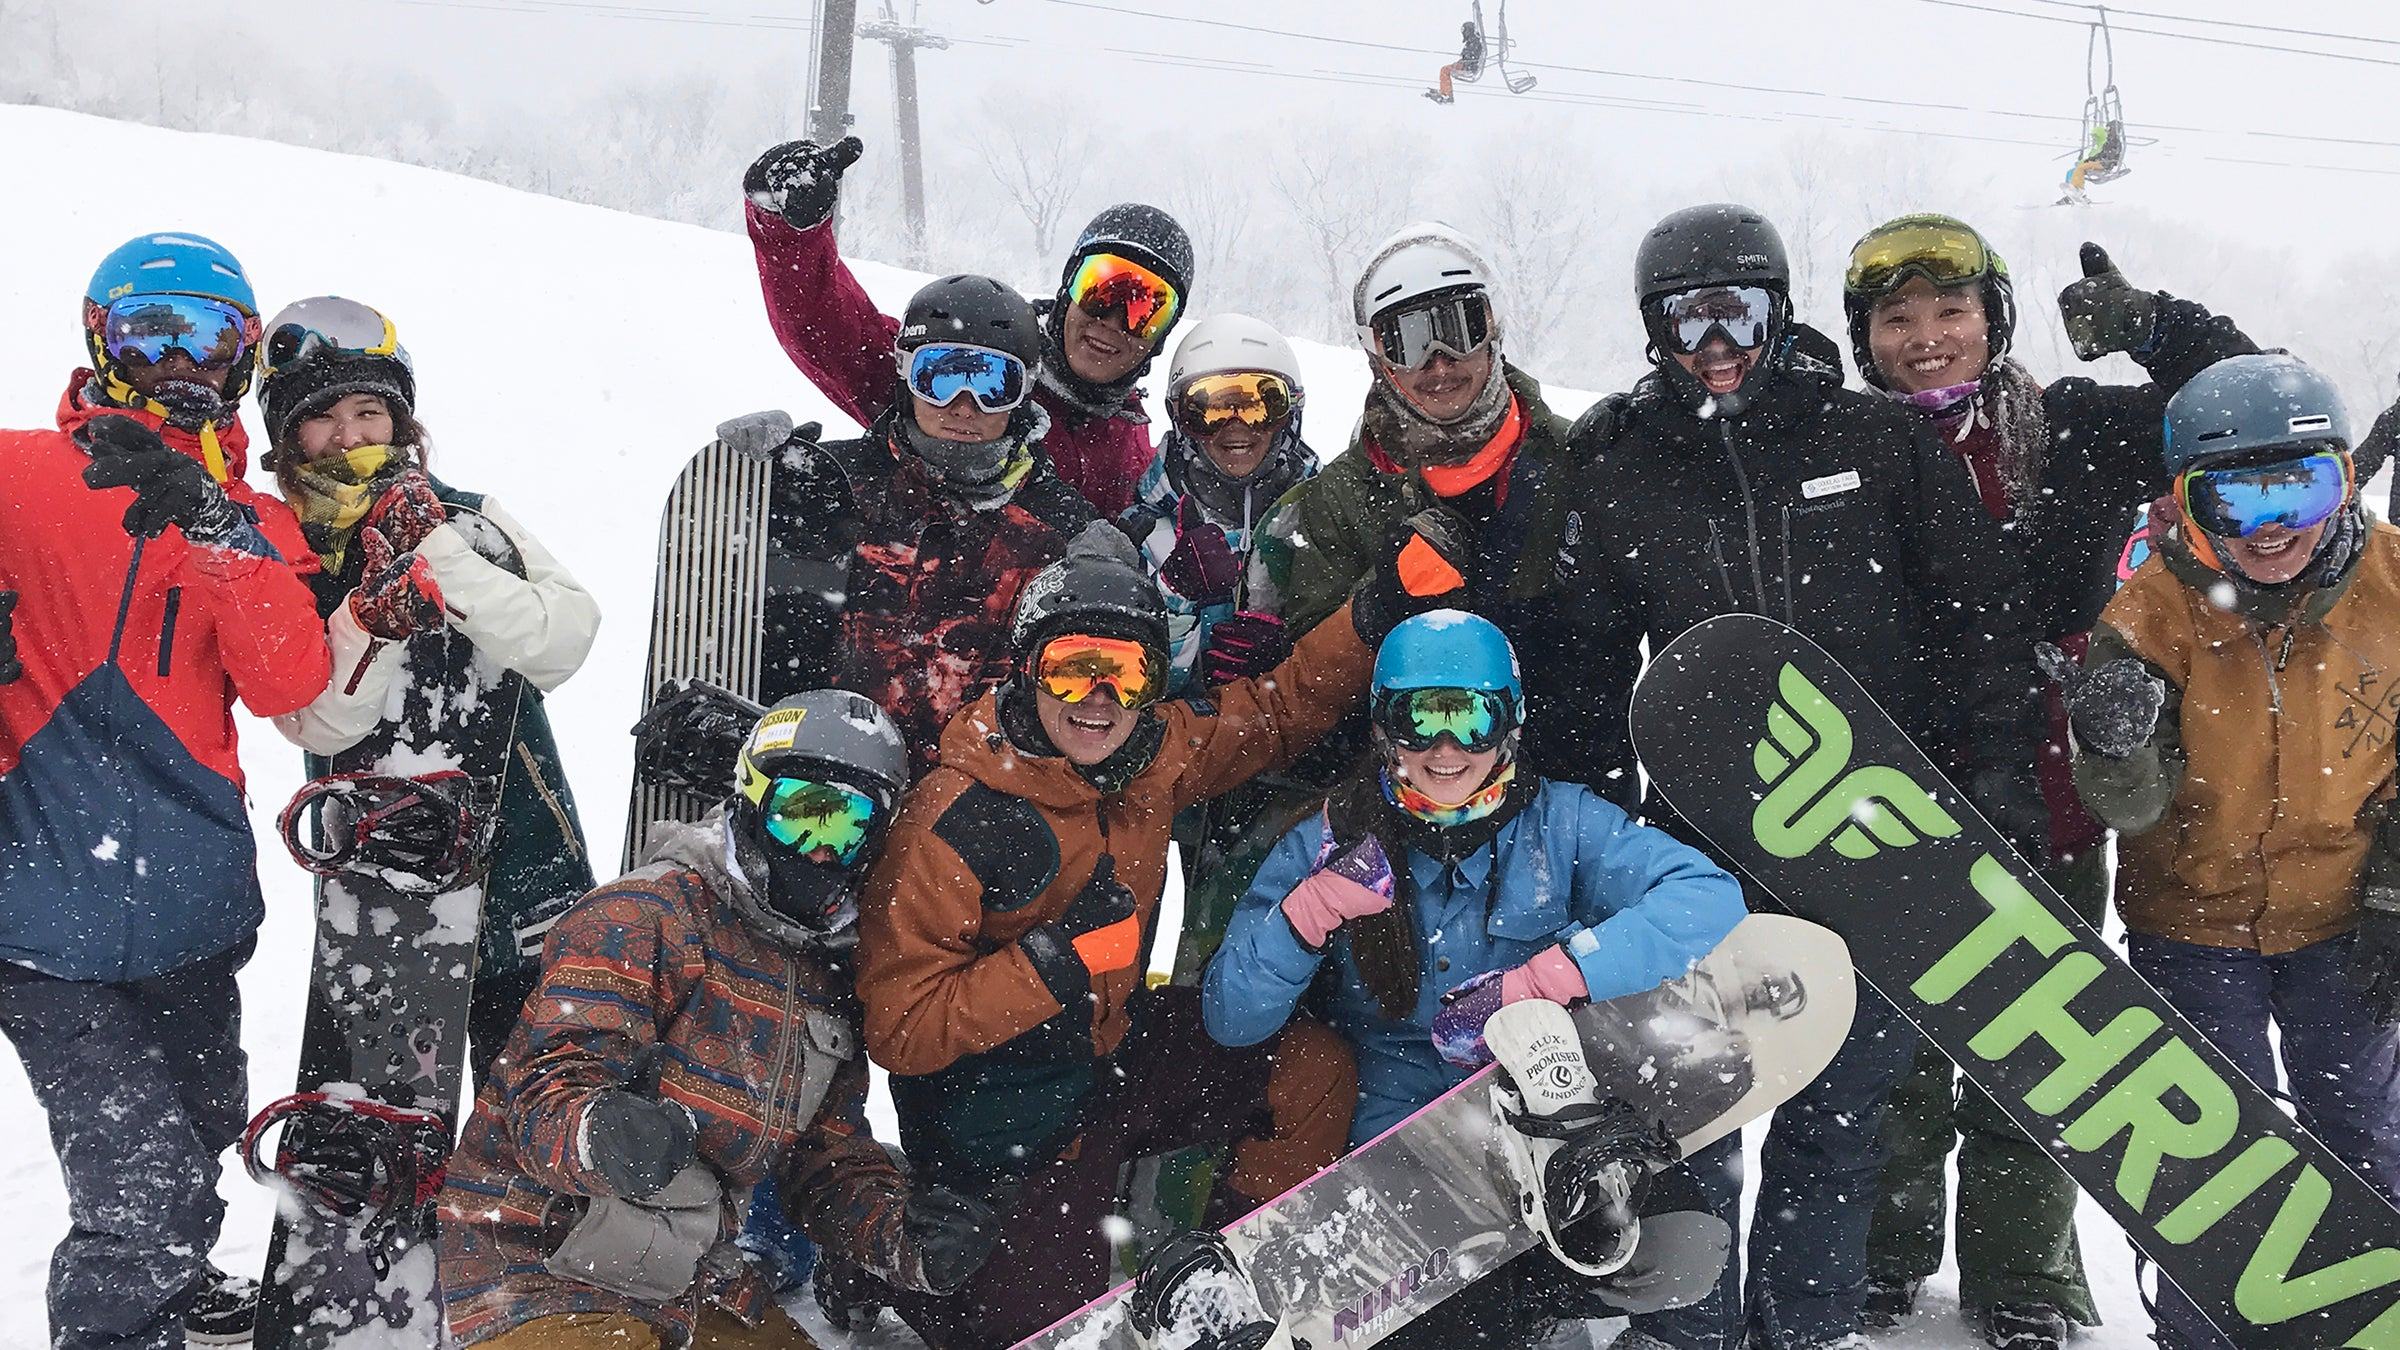 Thrive Snowboard Coaches